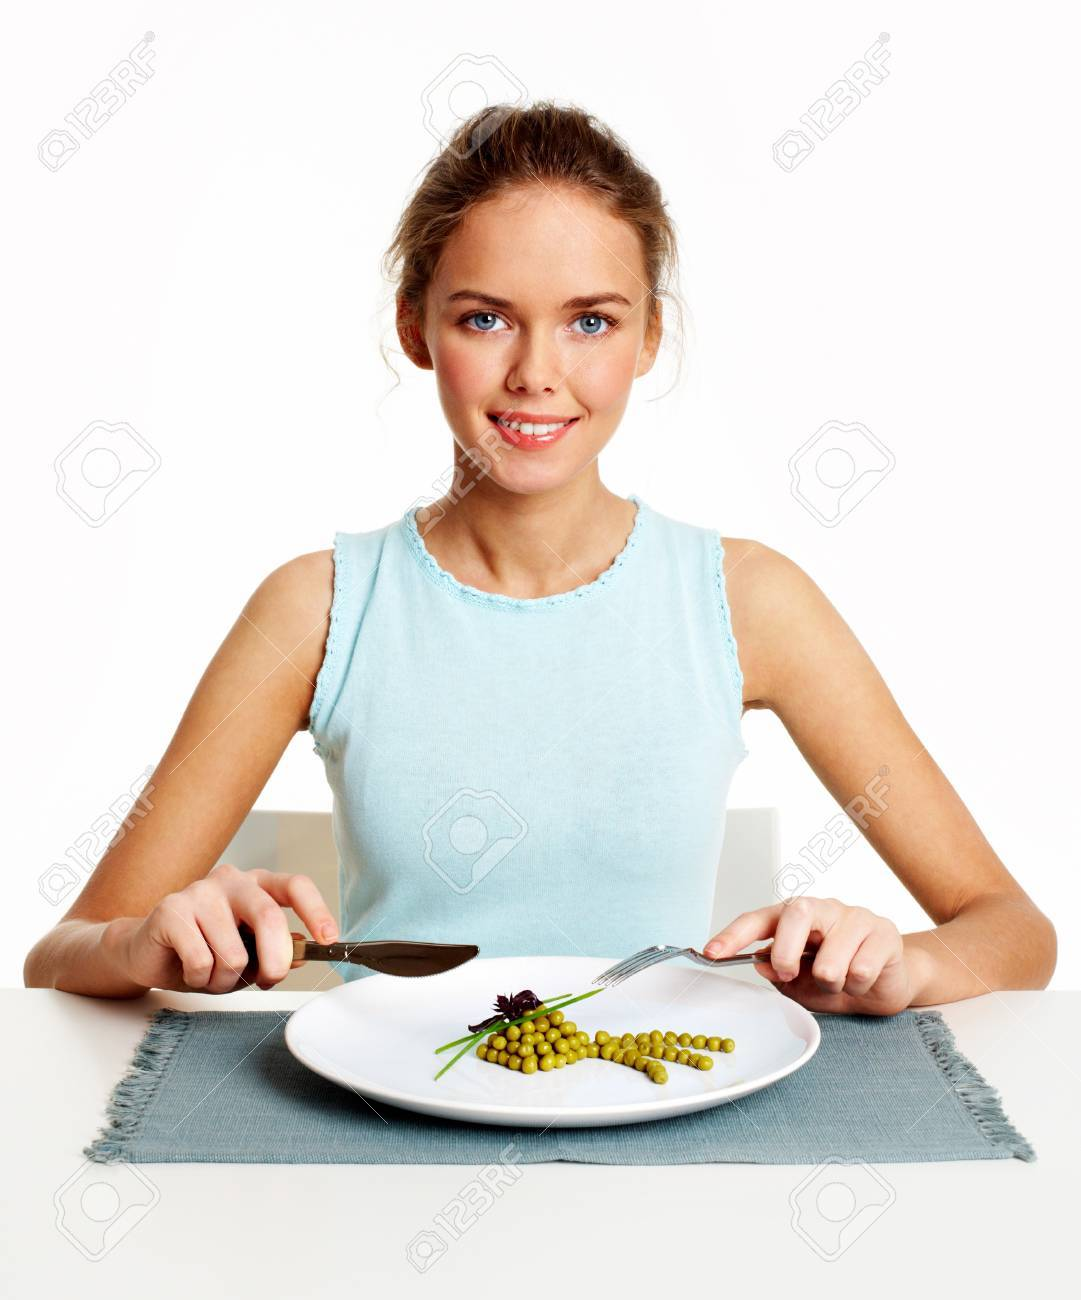 Portrait of pretty young girl with fork and knife in hands and plate with pea starter in front Stock Photo - 9164383